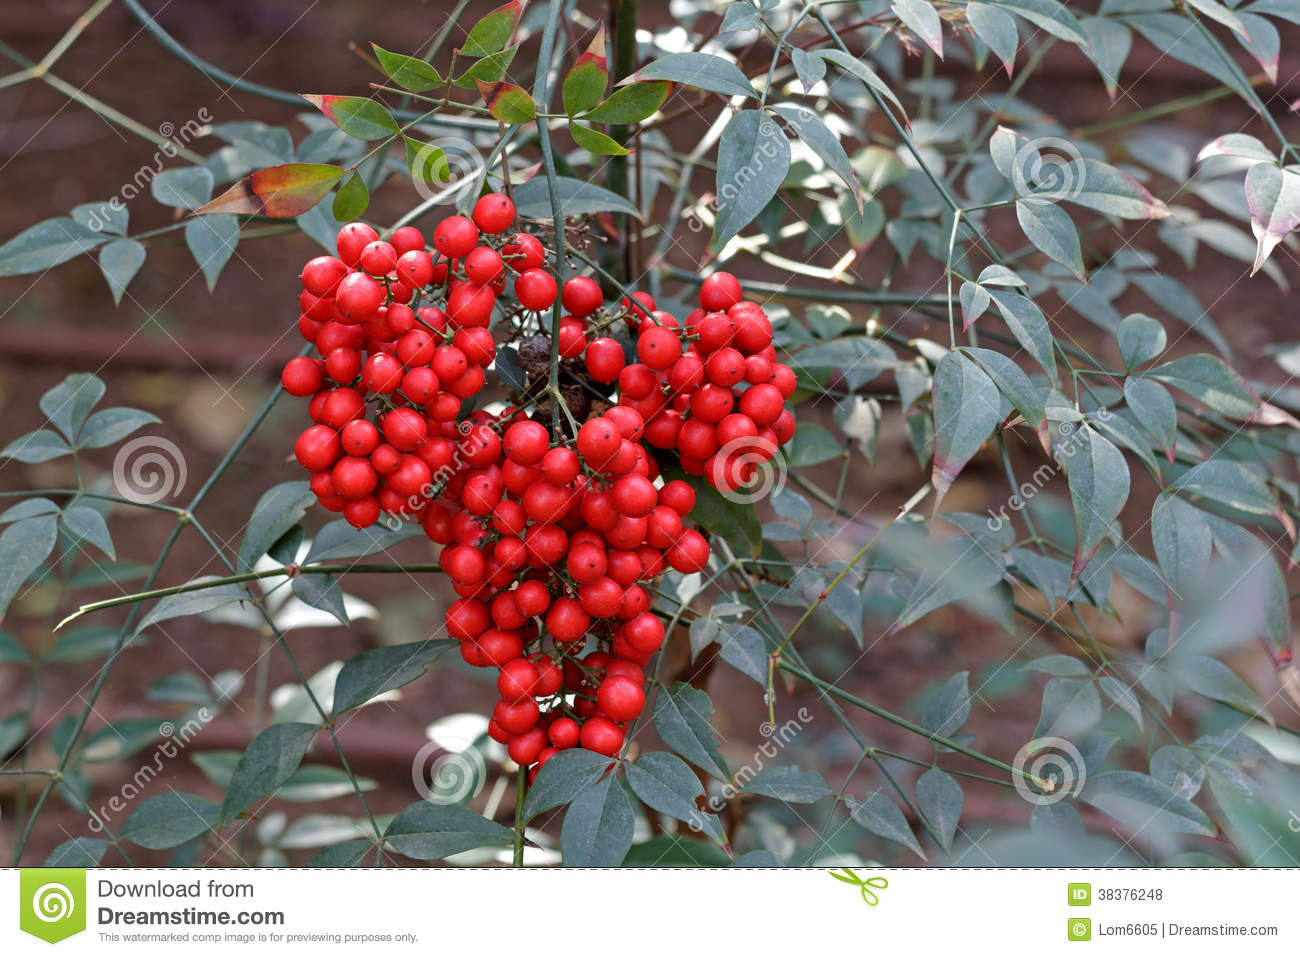 Plant Met Rode Bessen Shrub With Red Berries Royalty Free Stock Photos Image